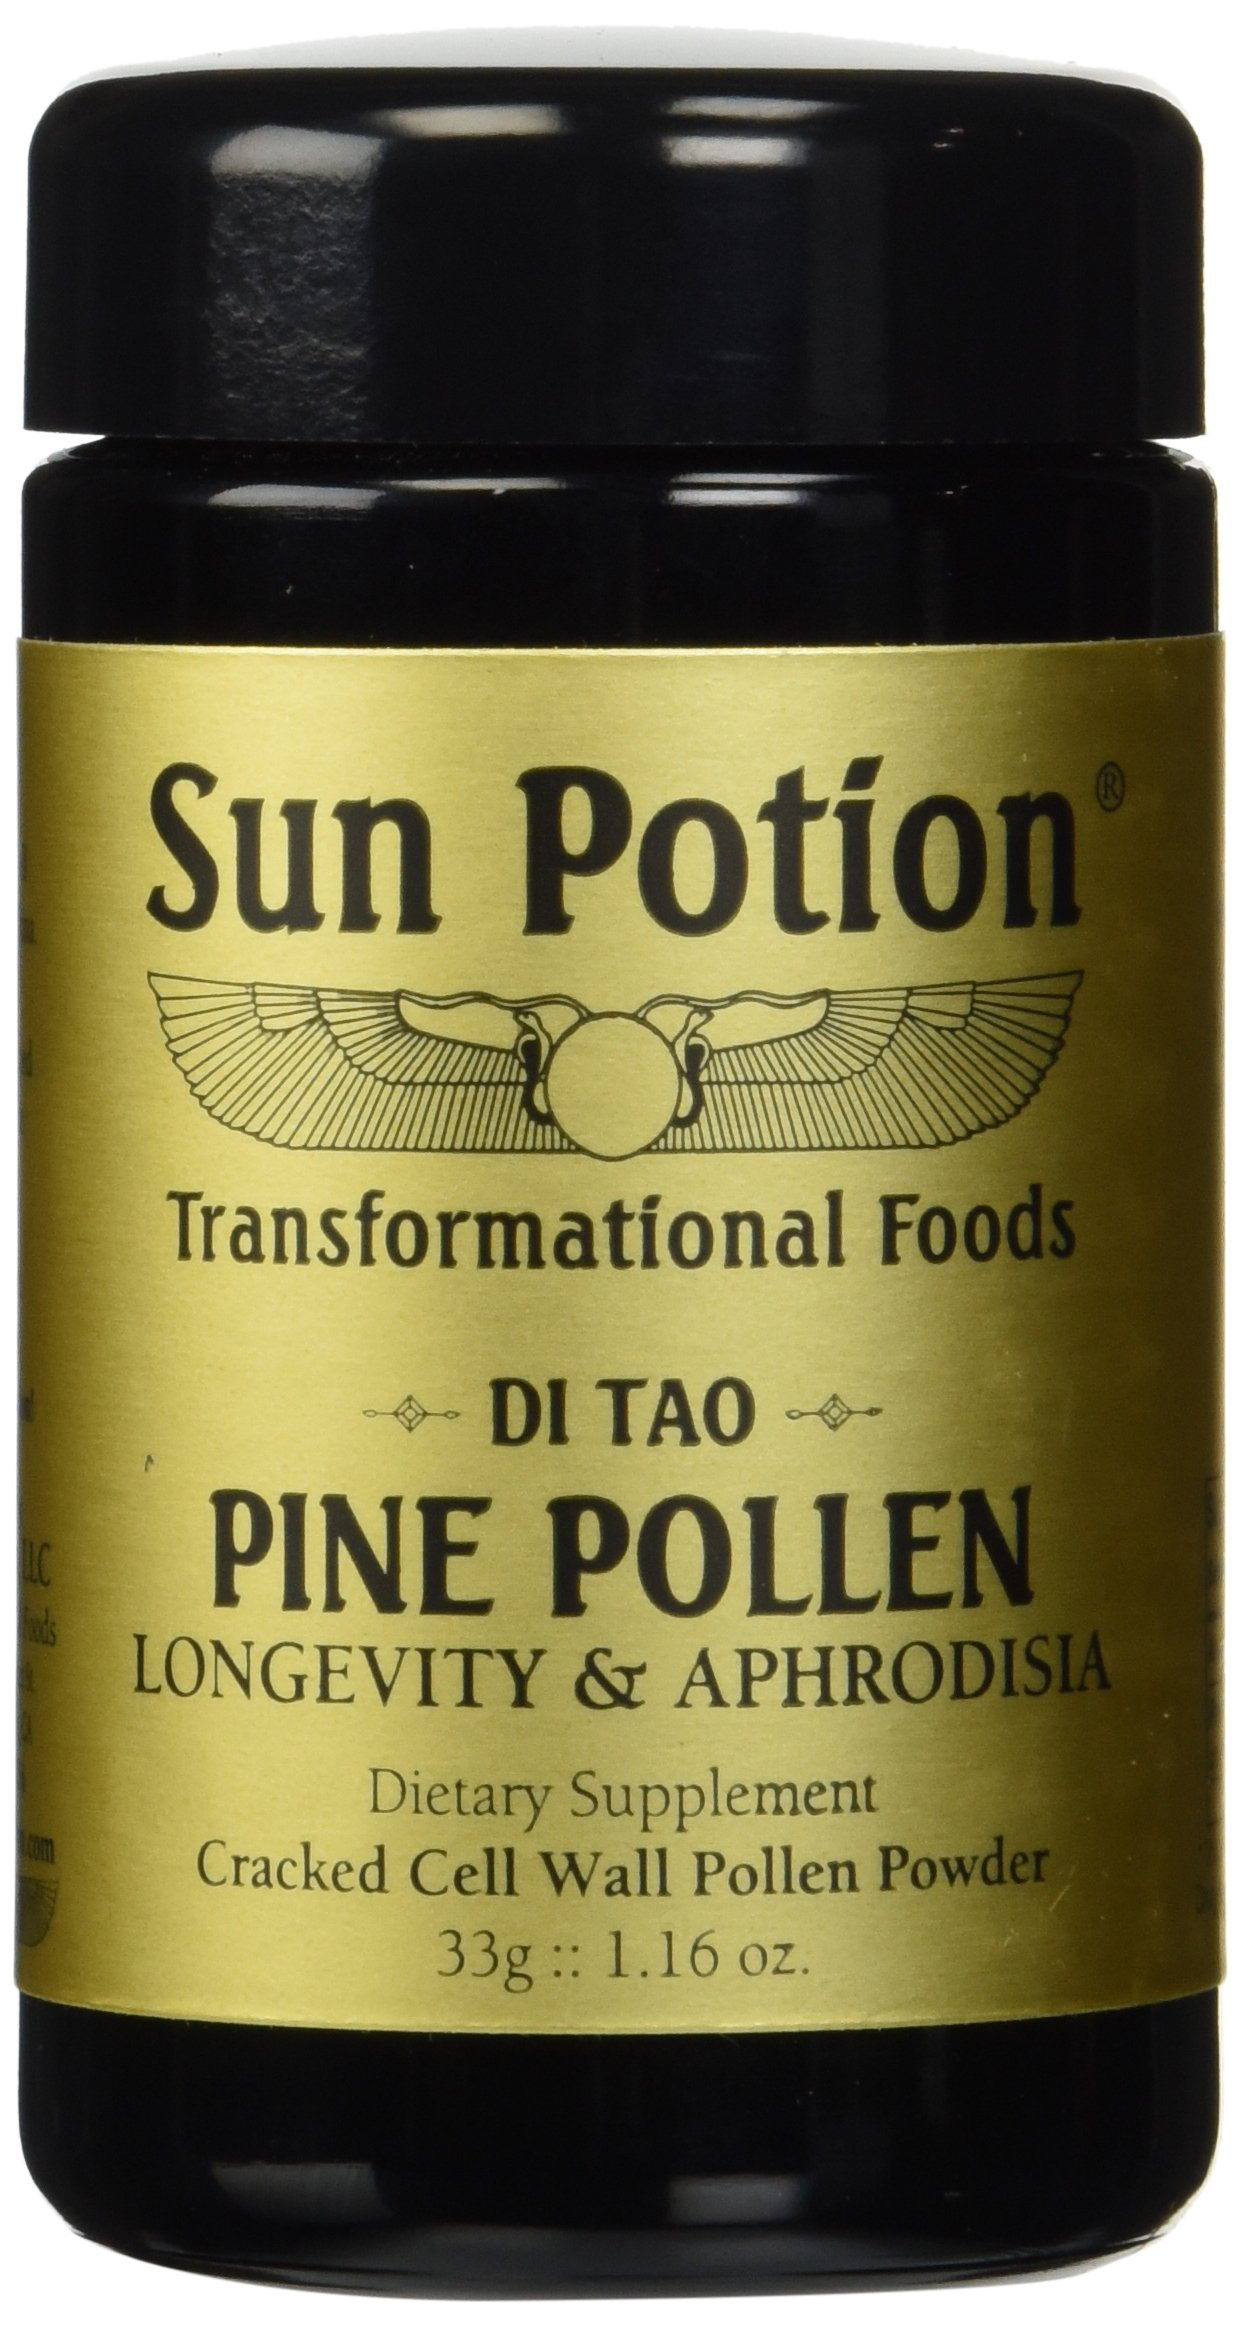 Pine Pollen Powder 33g by Sun Potion - Organic, Wildcrafted Herbal Extract, Superfood and Supplement, Cracked Cell Wall, Amino Acids - Metabolism, Libido, and Endurance Enhancing